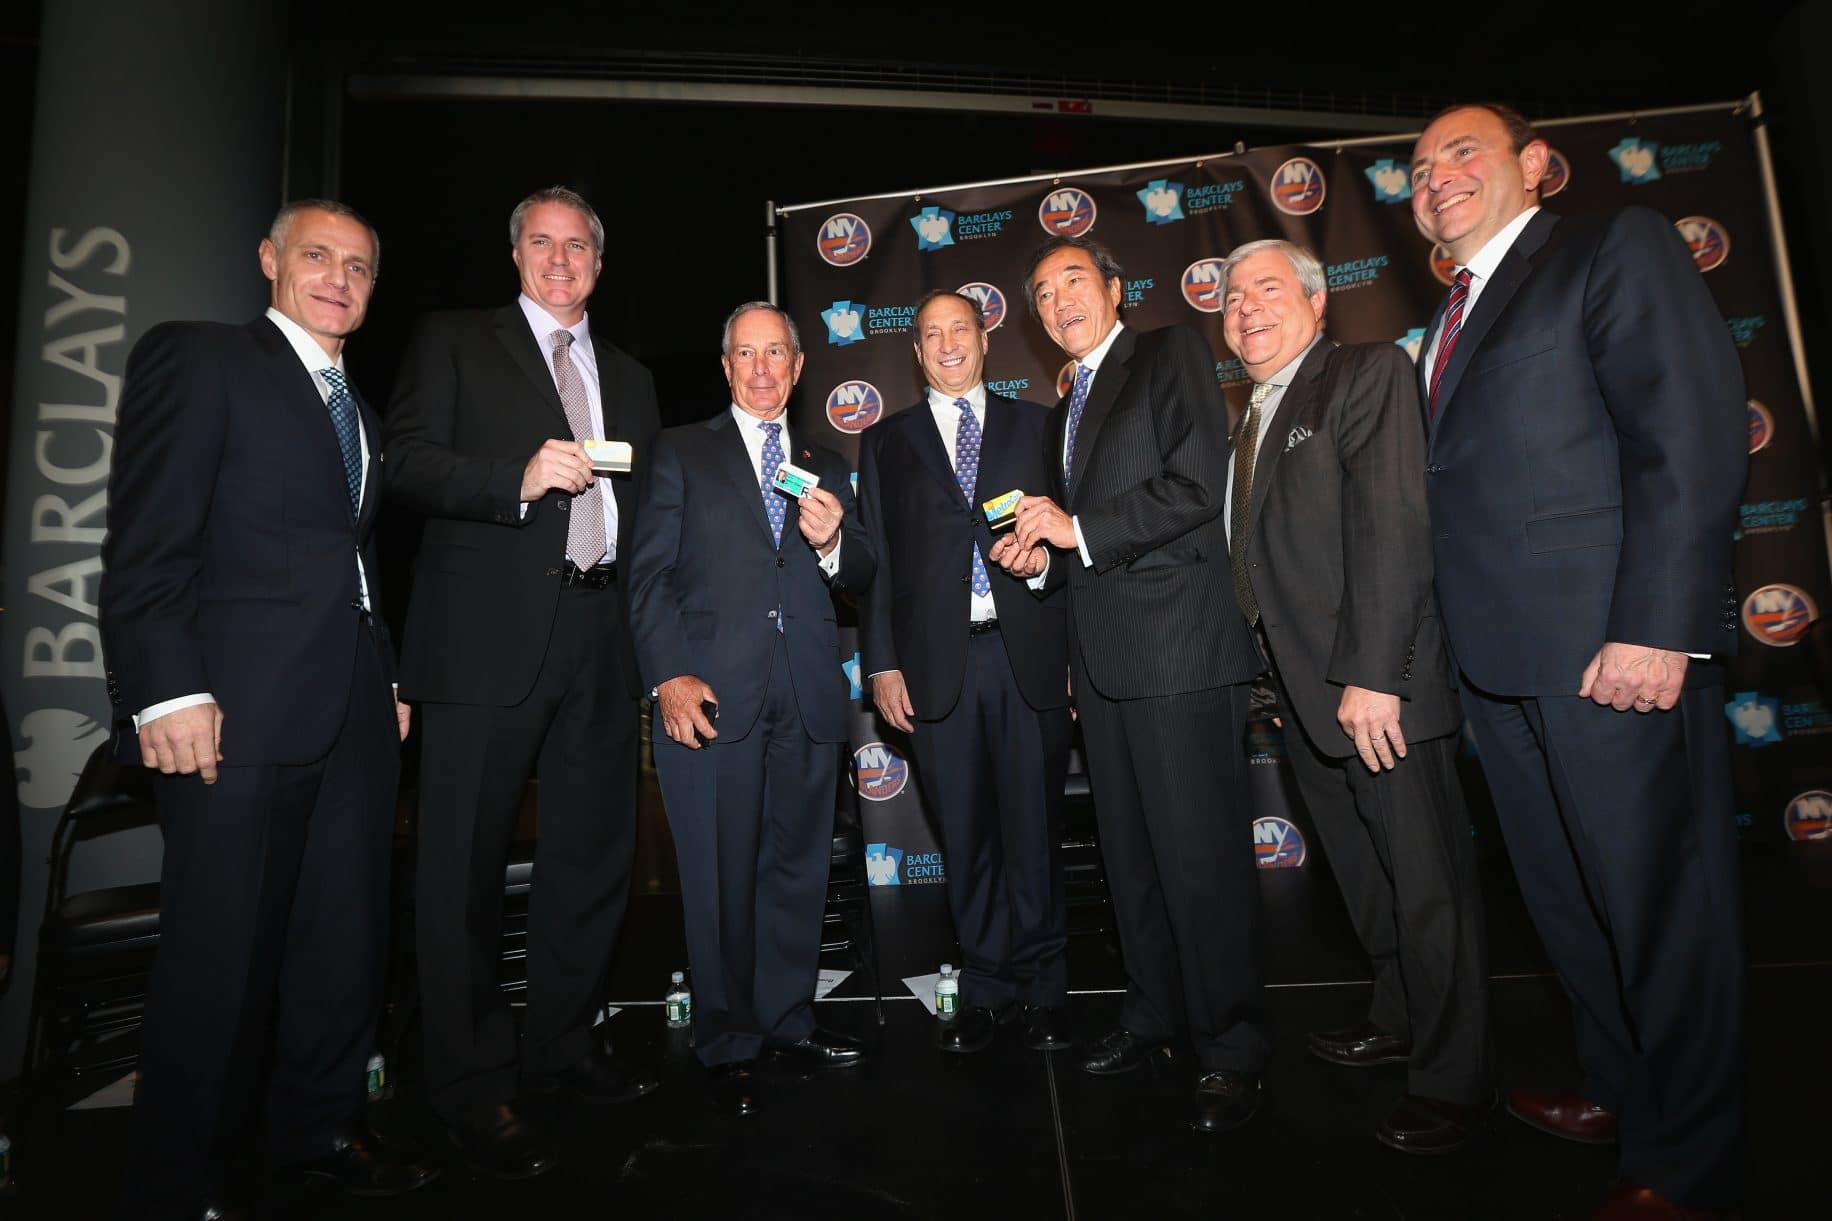 Mayor-bloomberg-and-islanders-owner-announce-plan-for-team-to-play-in-brooklyn